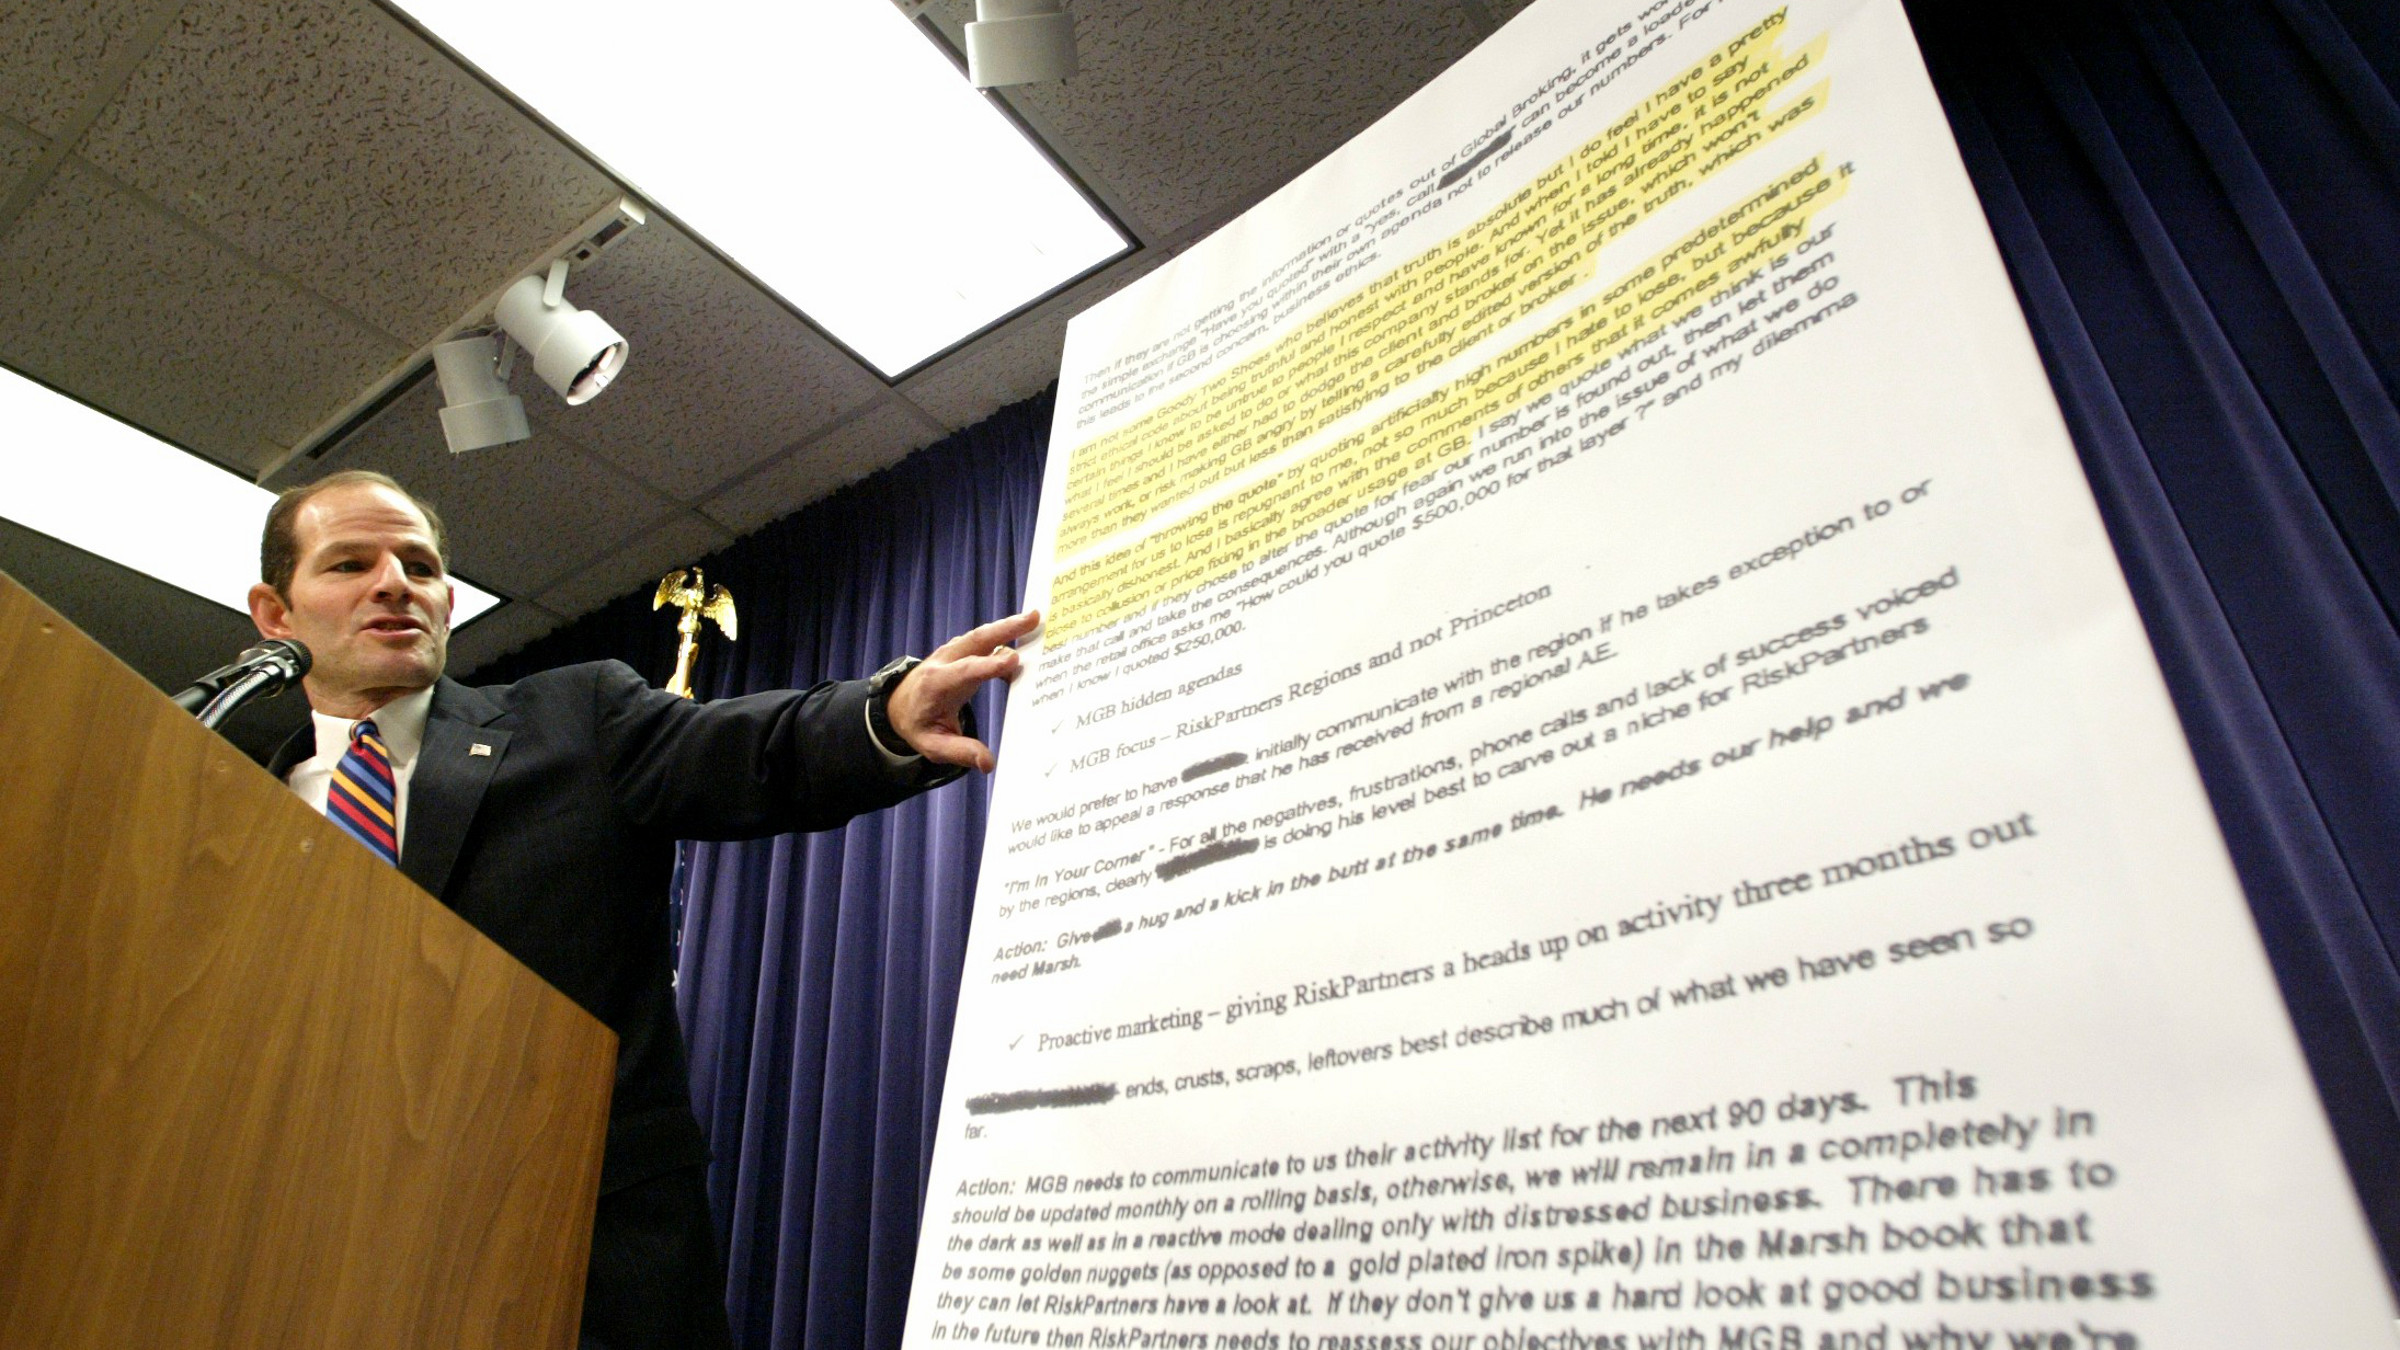 Attorney General Eliot Spitzer reads from a copy of emails from the insurance brokerage firm Marsh & McLennan Companies during a news conference in New York Thursday, Oct.14, 2004. Spitzer announced today he was suing the firm, and that his investigation revealed widespread corruption in the insurance industry.